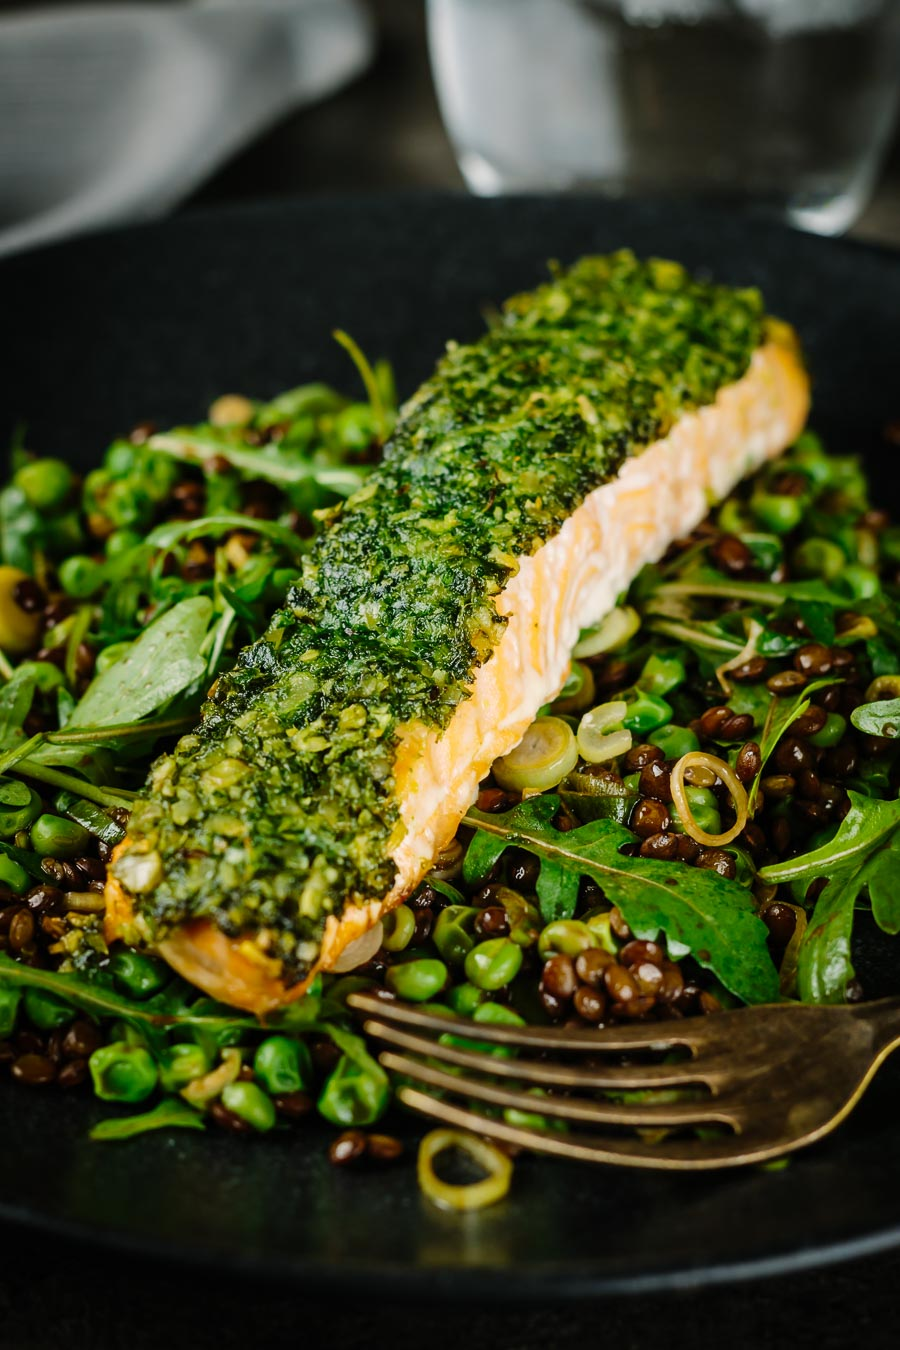 Baked salmon is a beautiful thing and this herb crust salmon is served with a vibrant green warm lentil salad and a simple but great balsamic dressing.